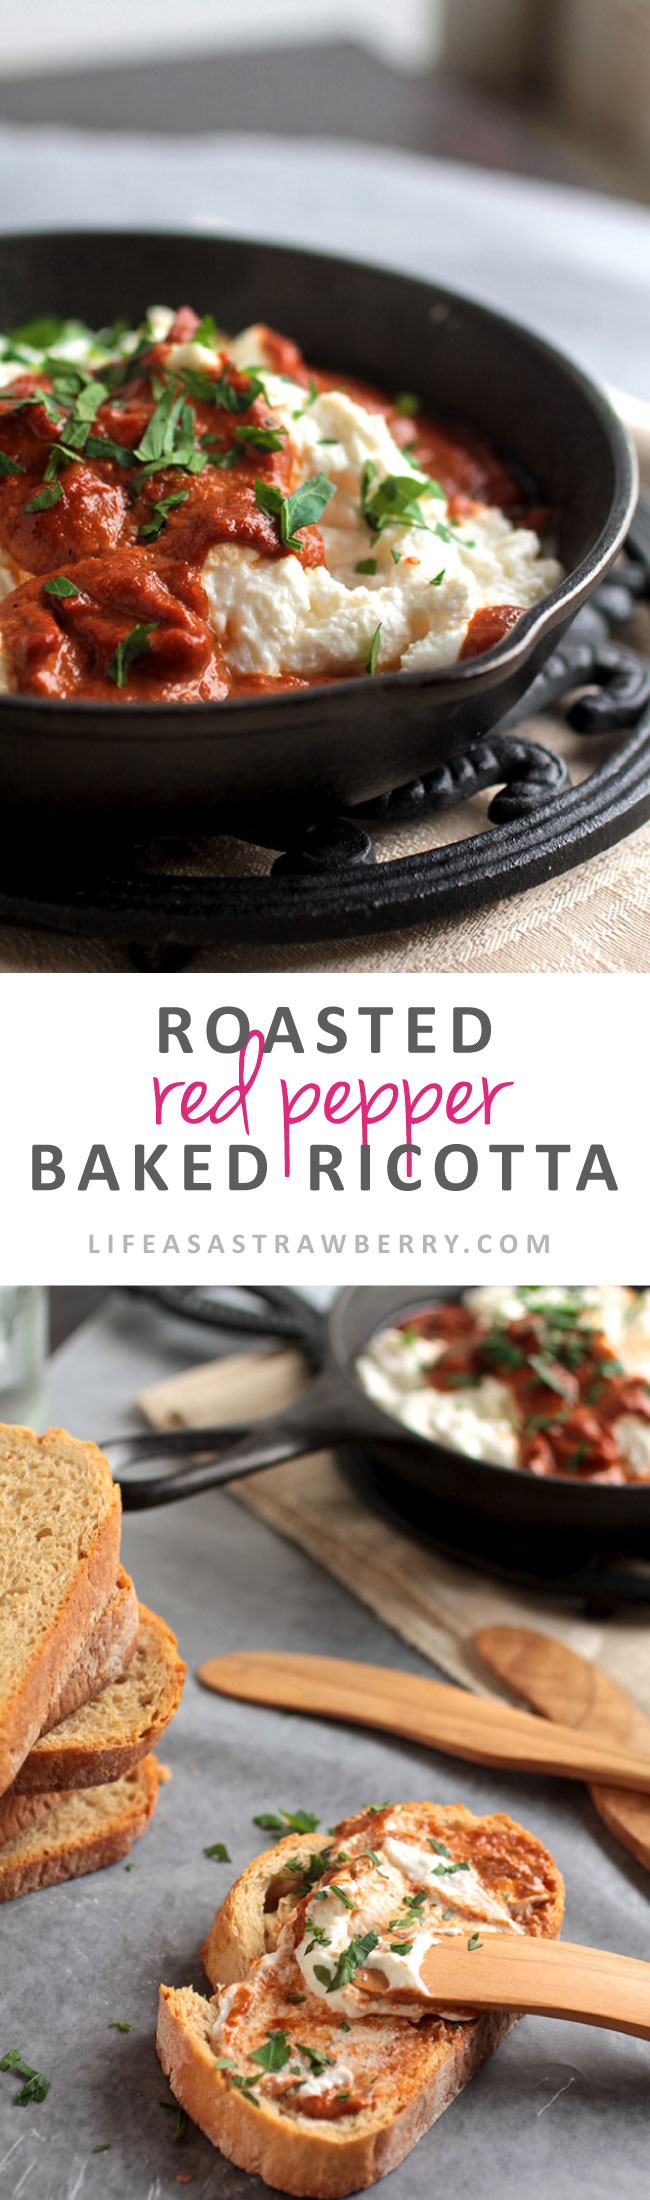 Roasted Red Pepper Baked Ricotta | This amazing baked cheese dip is sure to be a hit! Velvety ricotta cheese with a flavor-packed roasted red pepper sauce. Vegetarian.